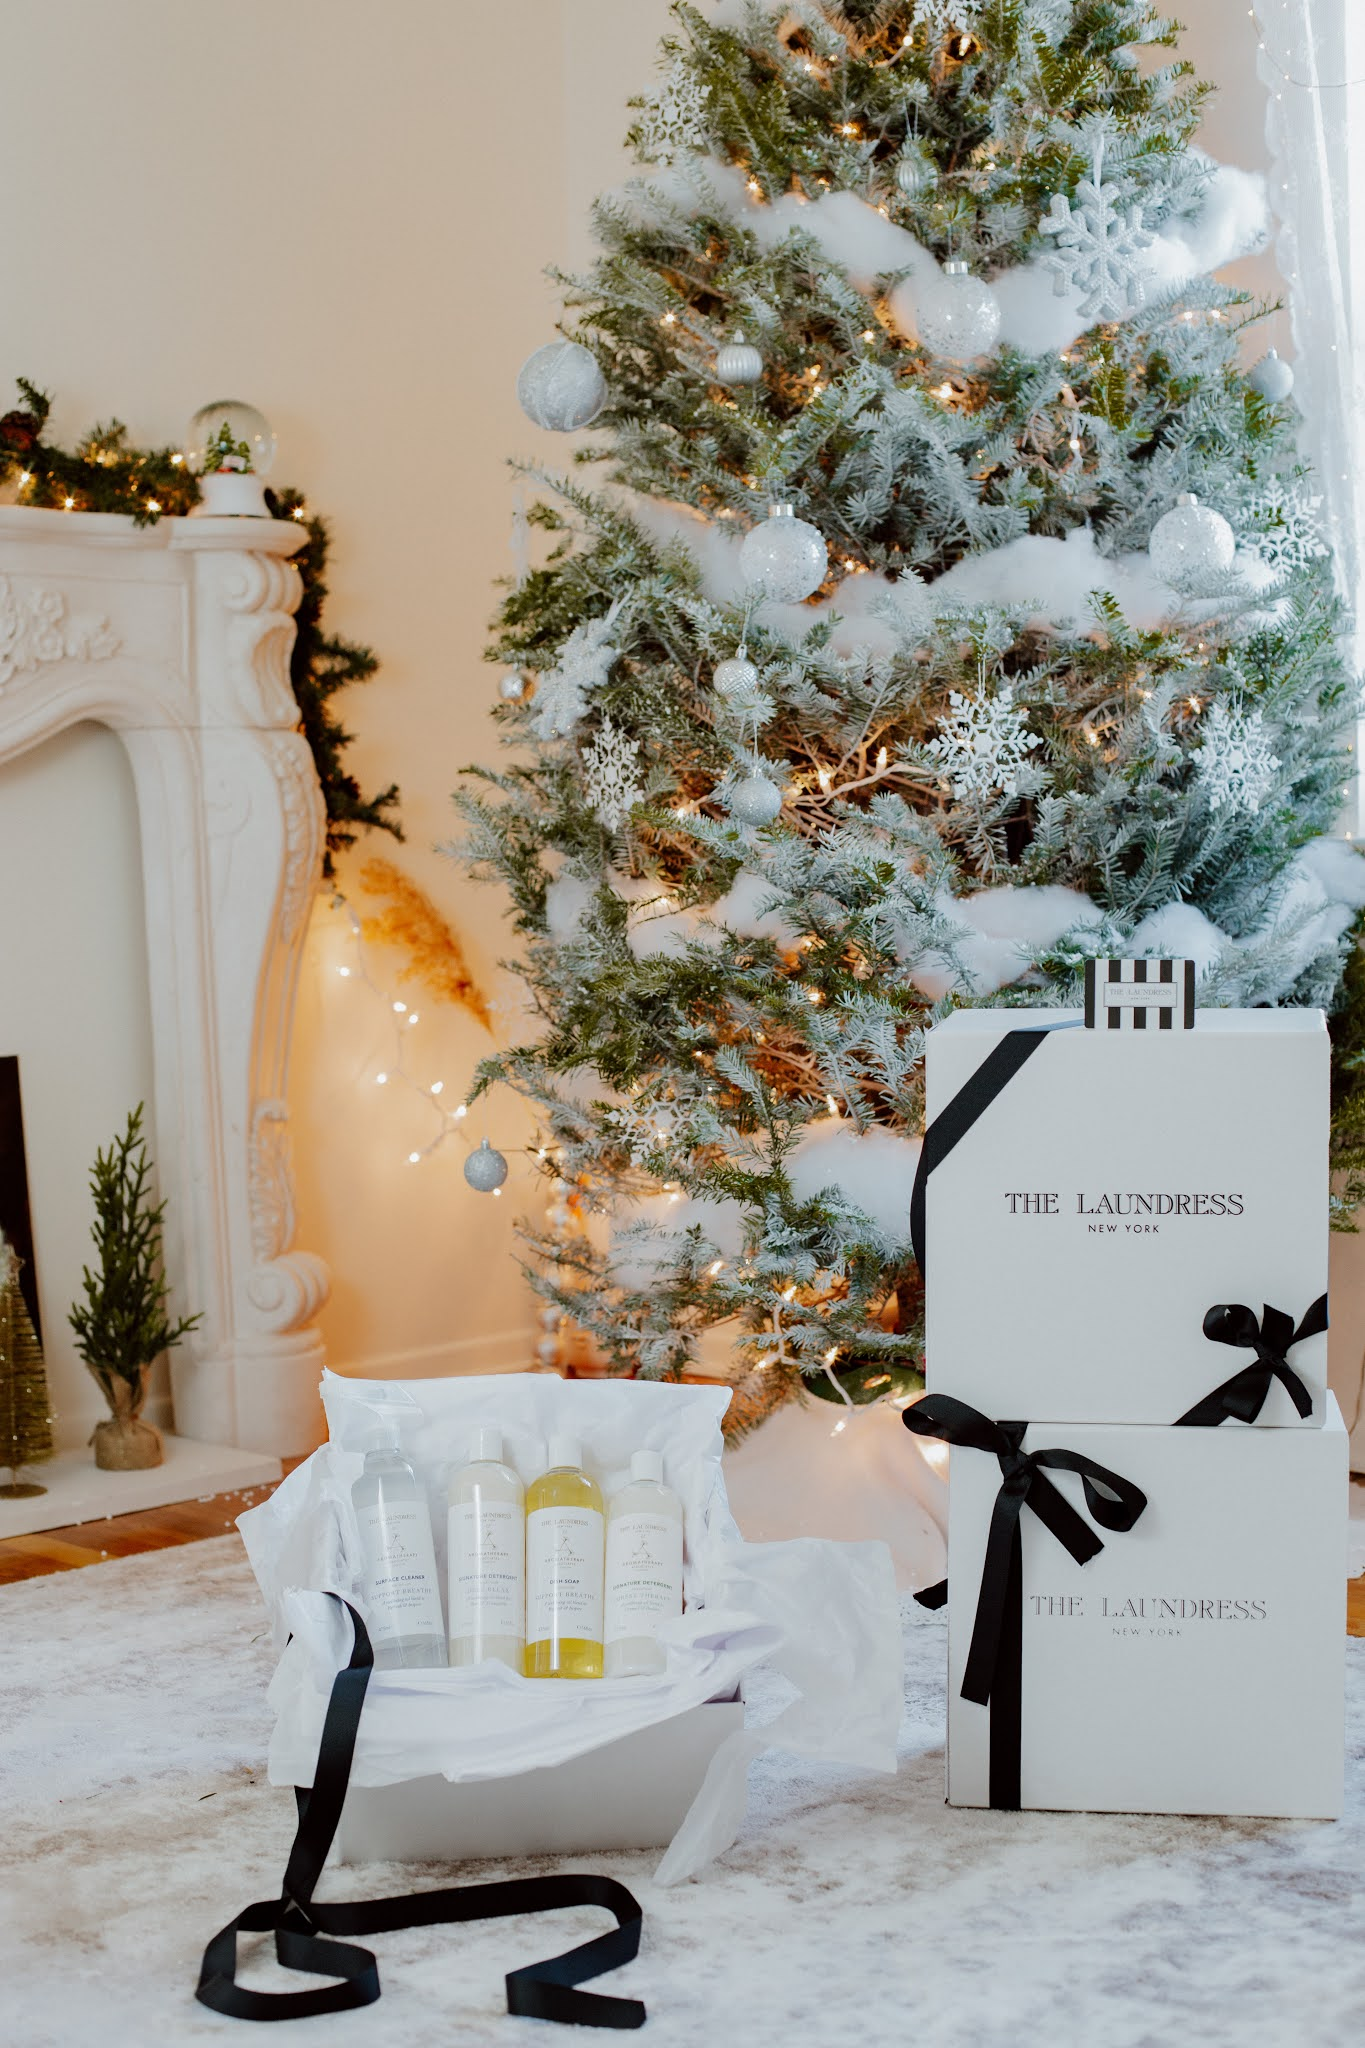 HOLIDAY GIVEAWAY** THE LAUNDRESS